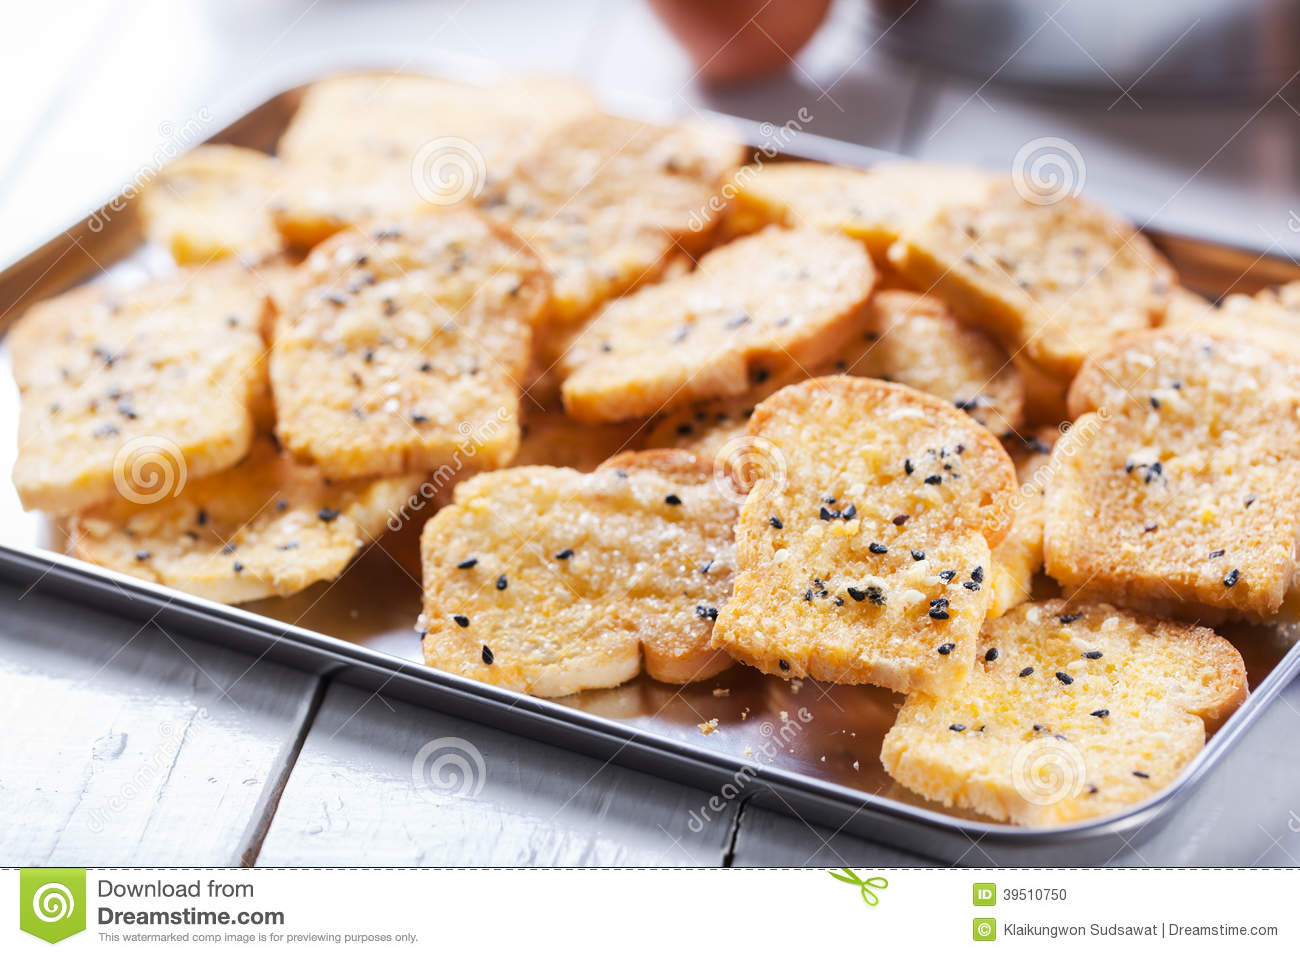 Homemade baking toast with sugar and sesame